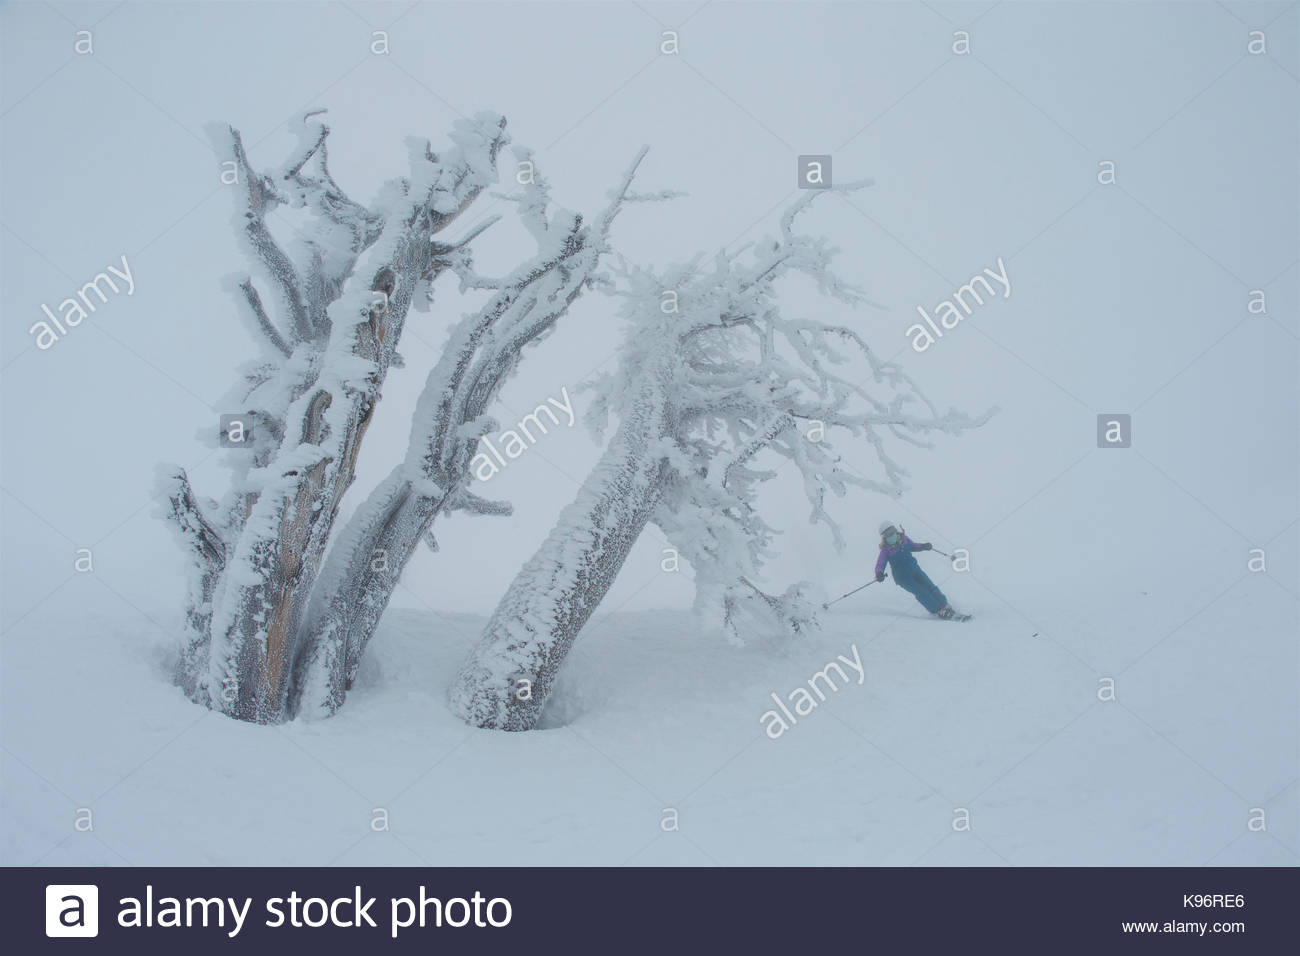 A teen girl skiing in foggy, whiteout conditions near rime covered trees. - Stock Image